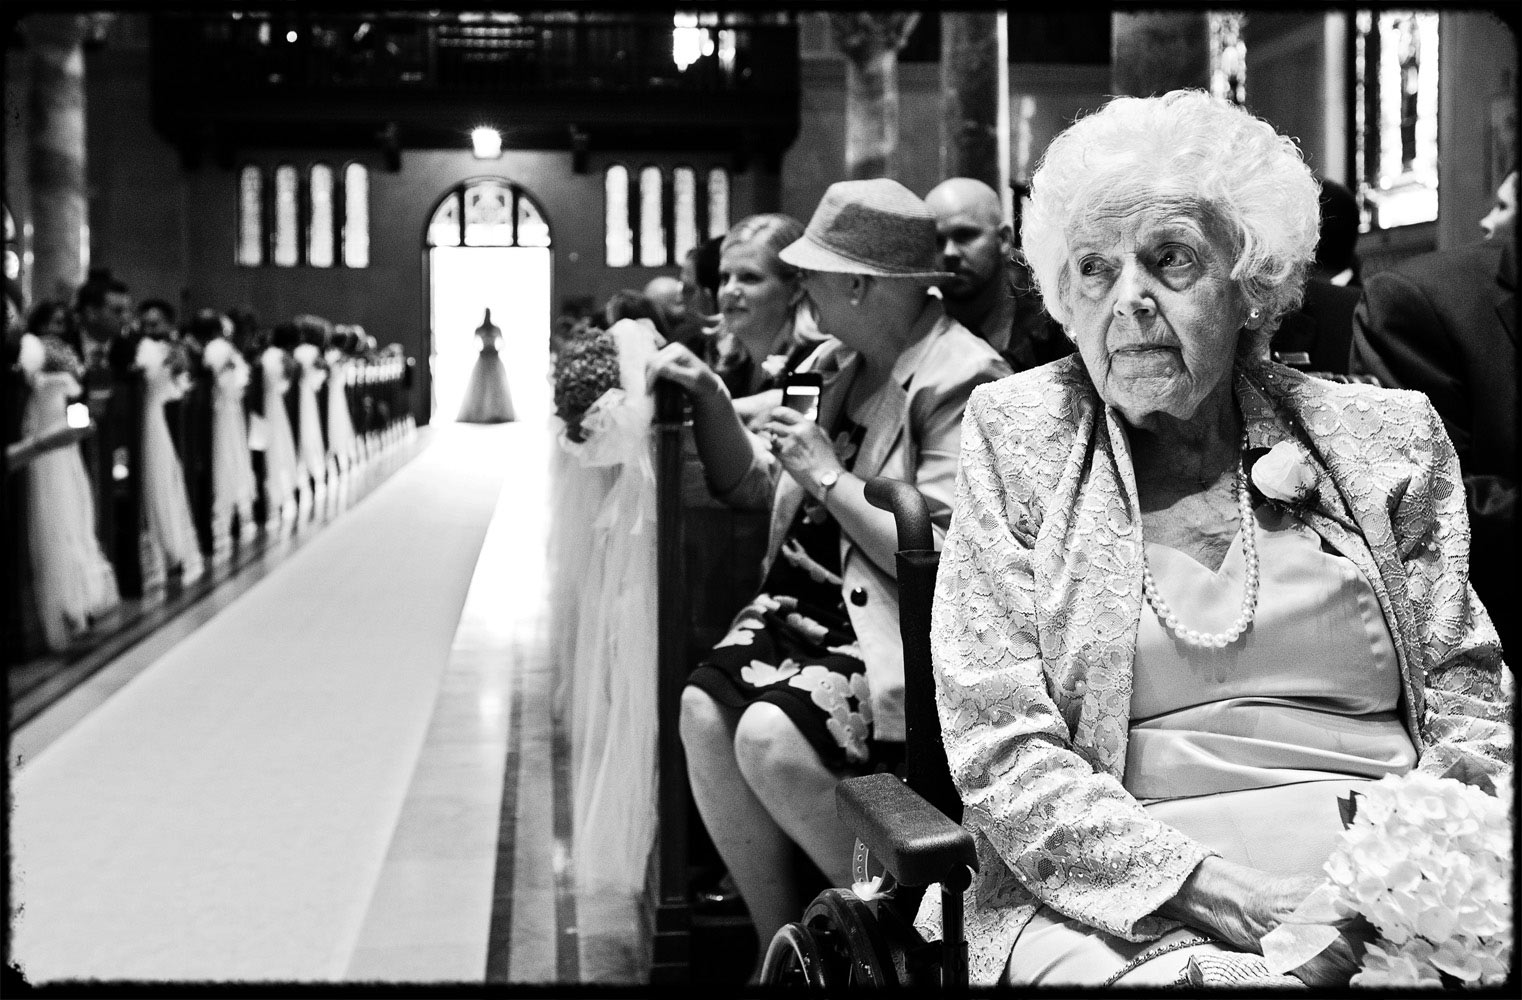 grandmother watches bride walk herself up the aisle